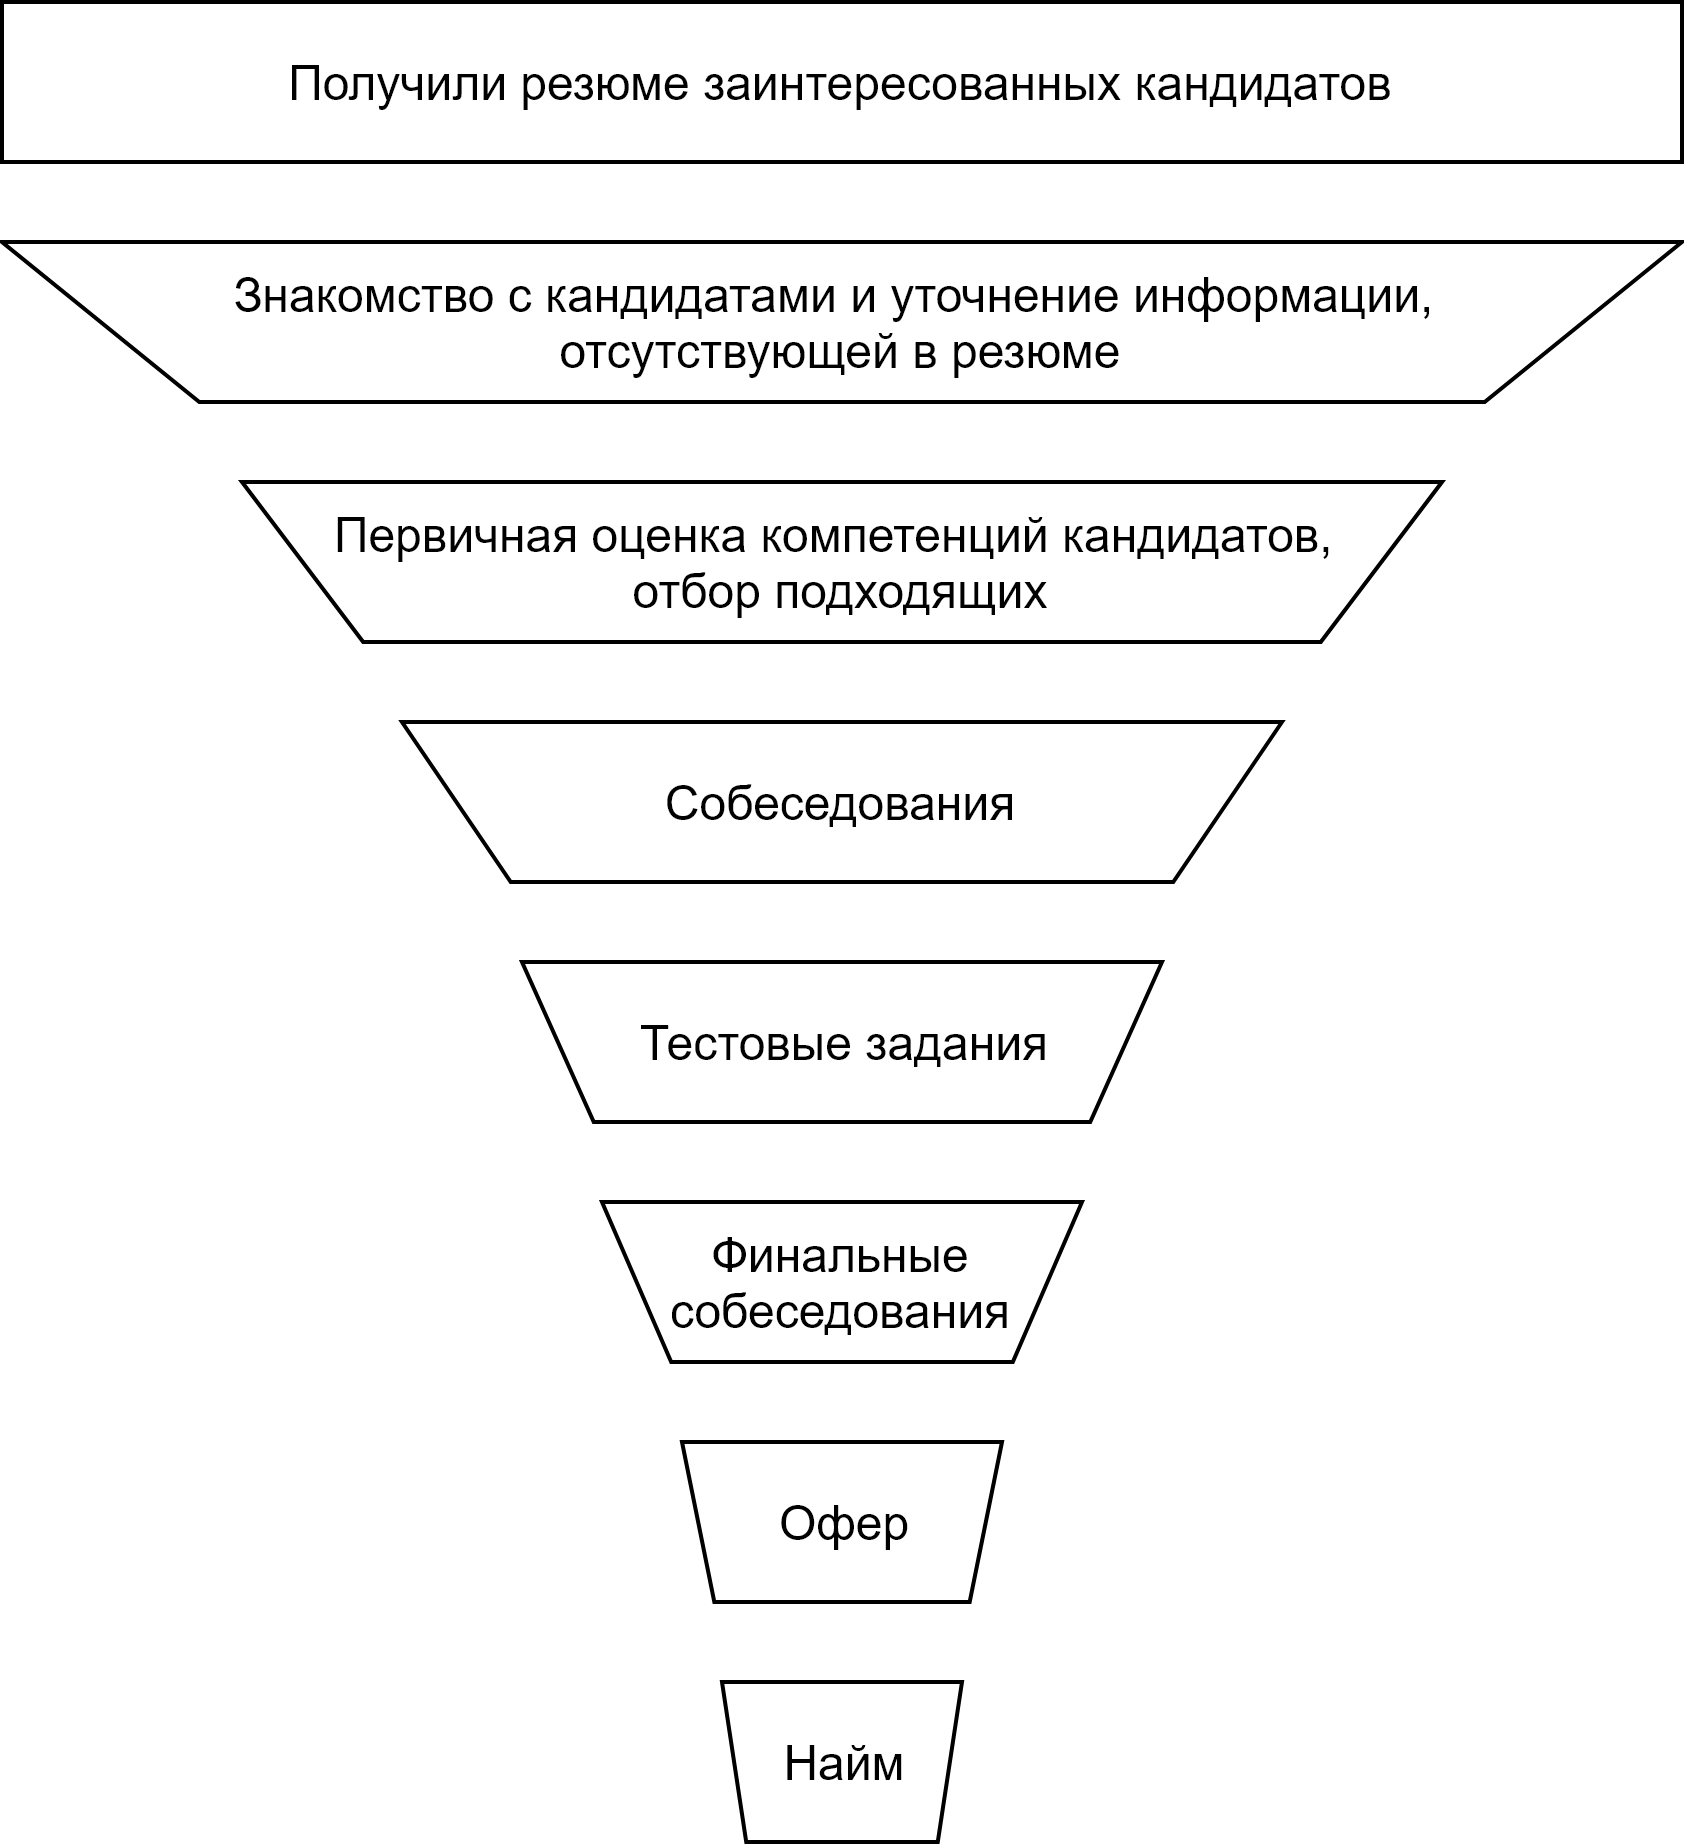 Funnel selection